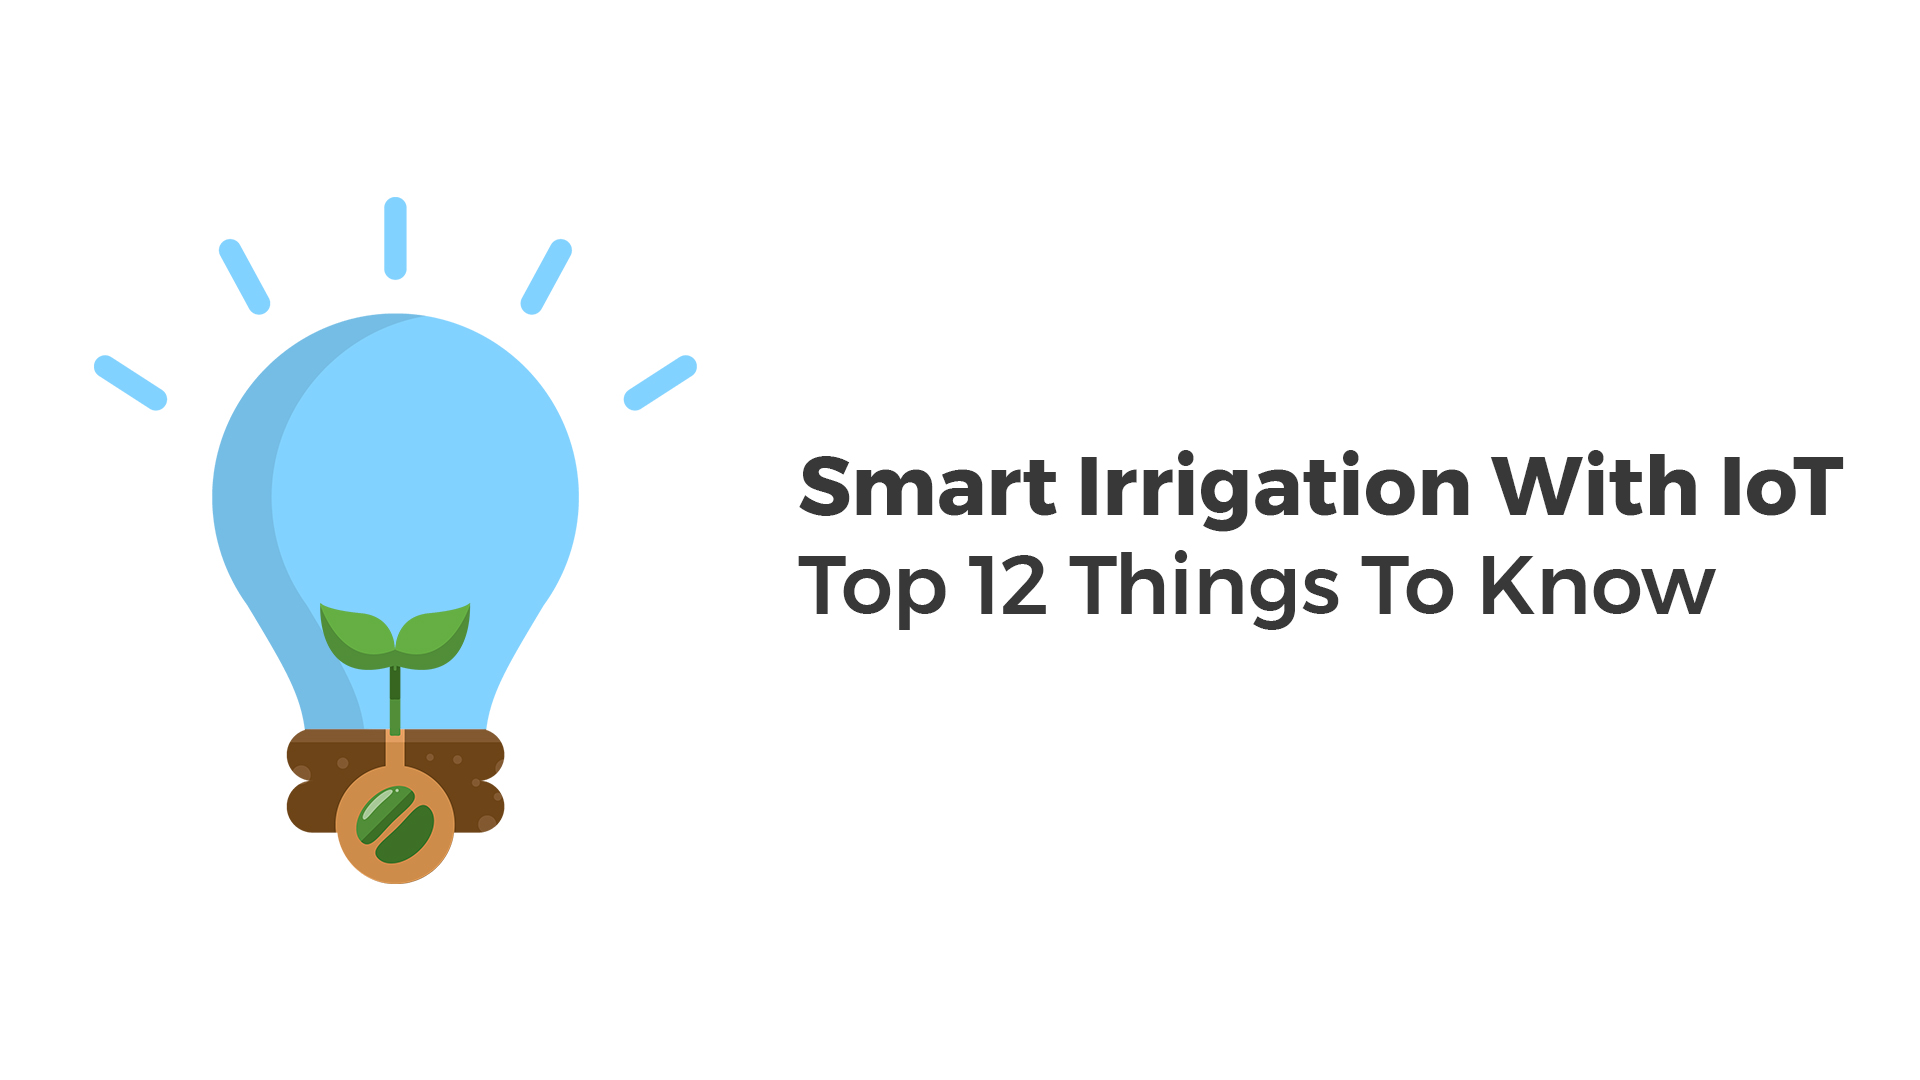 Benefits and key features of smart irrigation